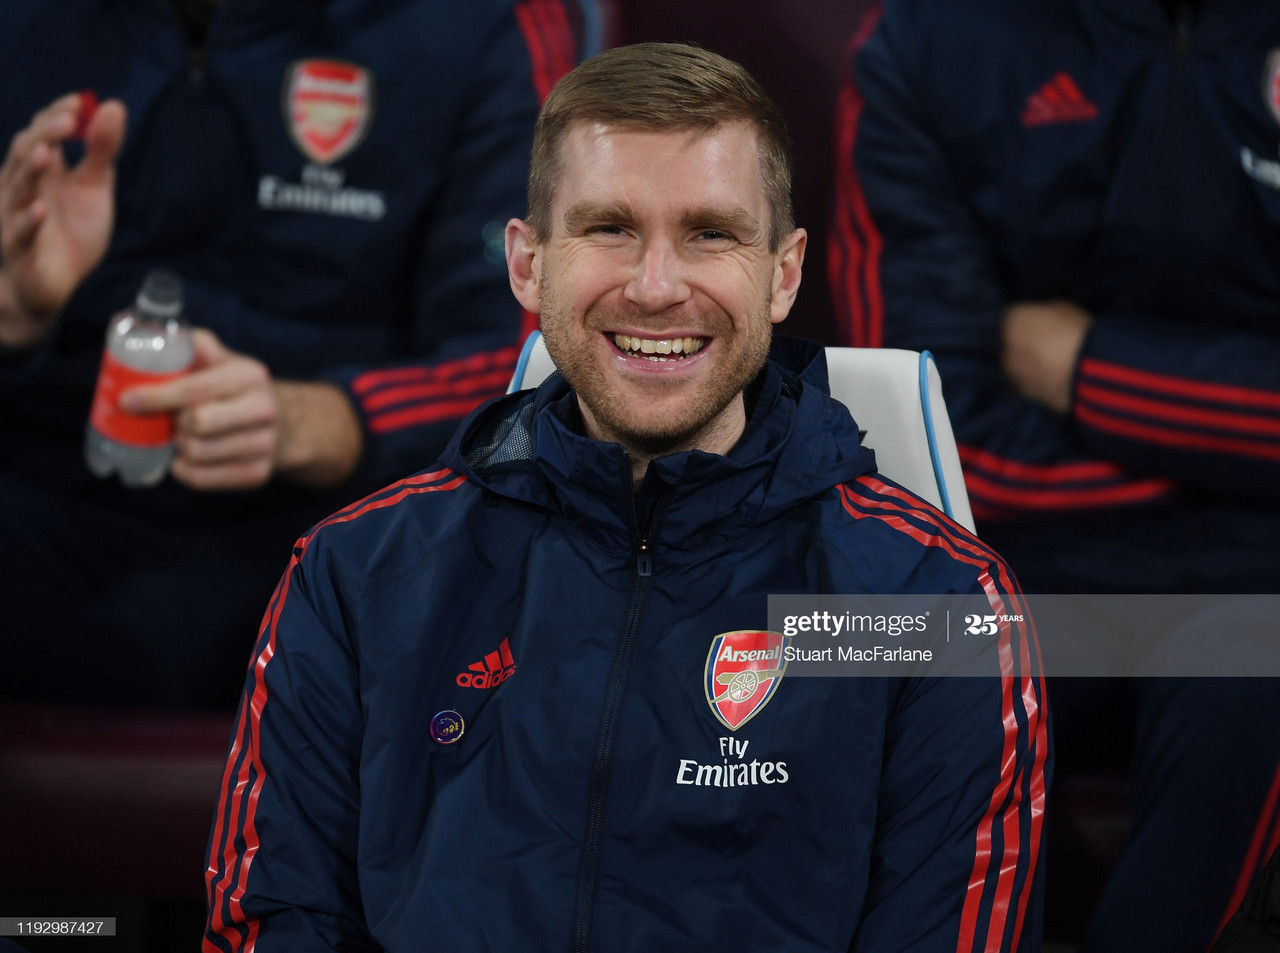 LONDON, ENGLAND - DECEMBER 09: Arsenal Academy Director Per Mer Mesacker the Premier League match between West Ham United and Arsenal FC at London Stadium on December 09, 2019 in London, United Kingdom. (Photo by Stuart MacFarlane/Arsenal FC via Getty Images)